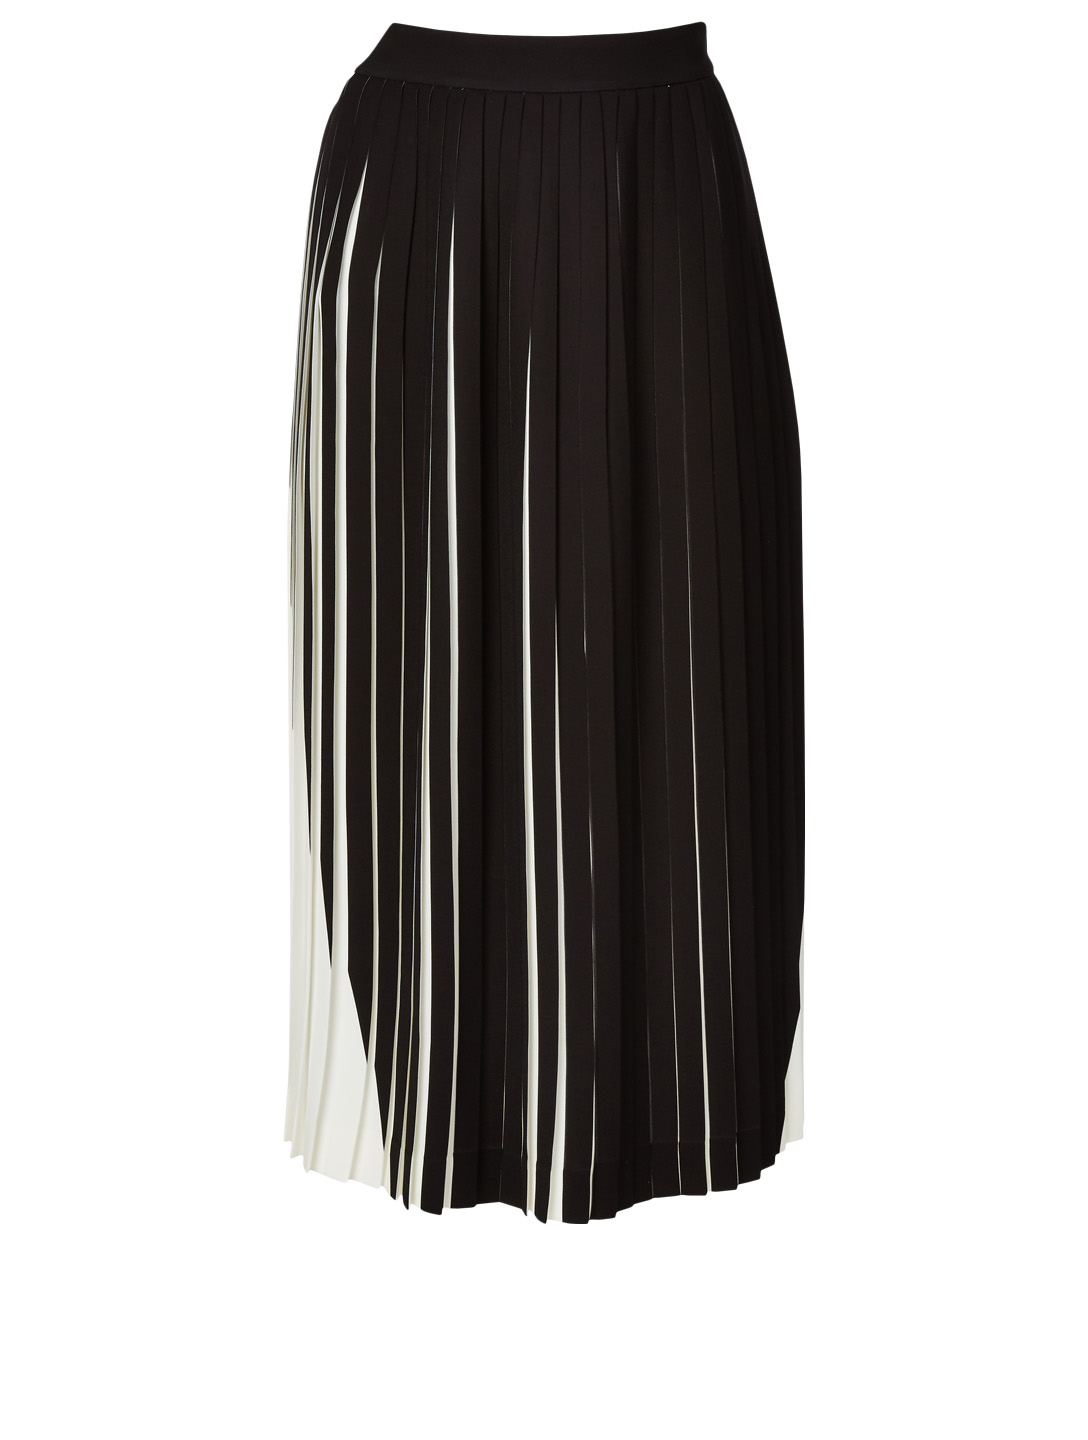 9920200b49 MAISON MARGIELA Two-Tone Pleated Midi Skirt Women's Multi ...